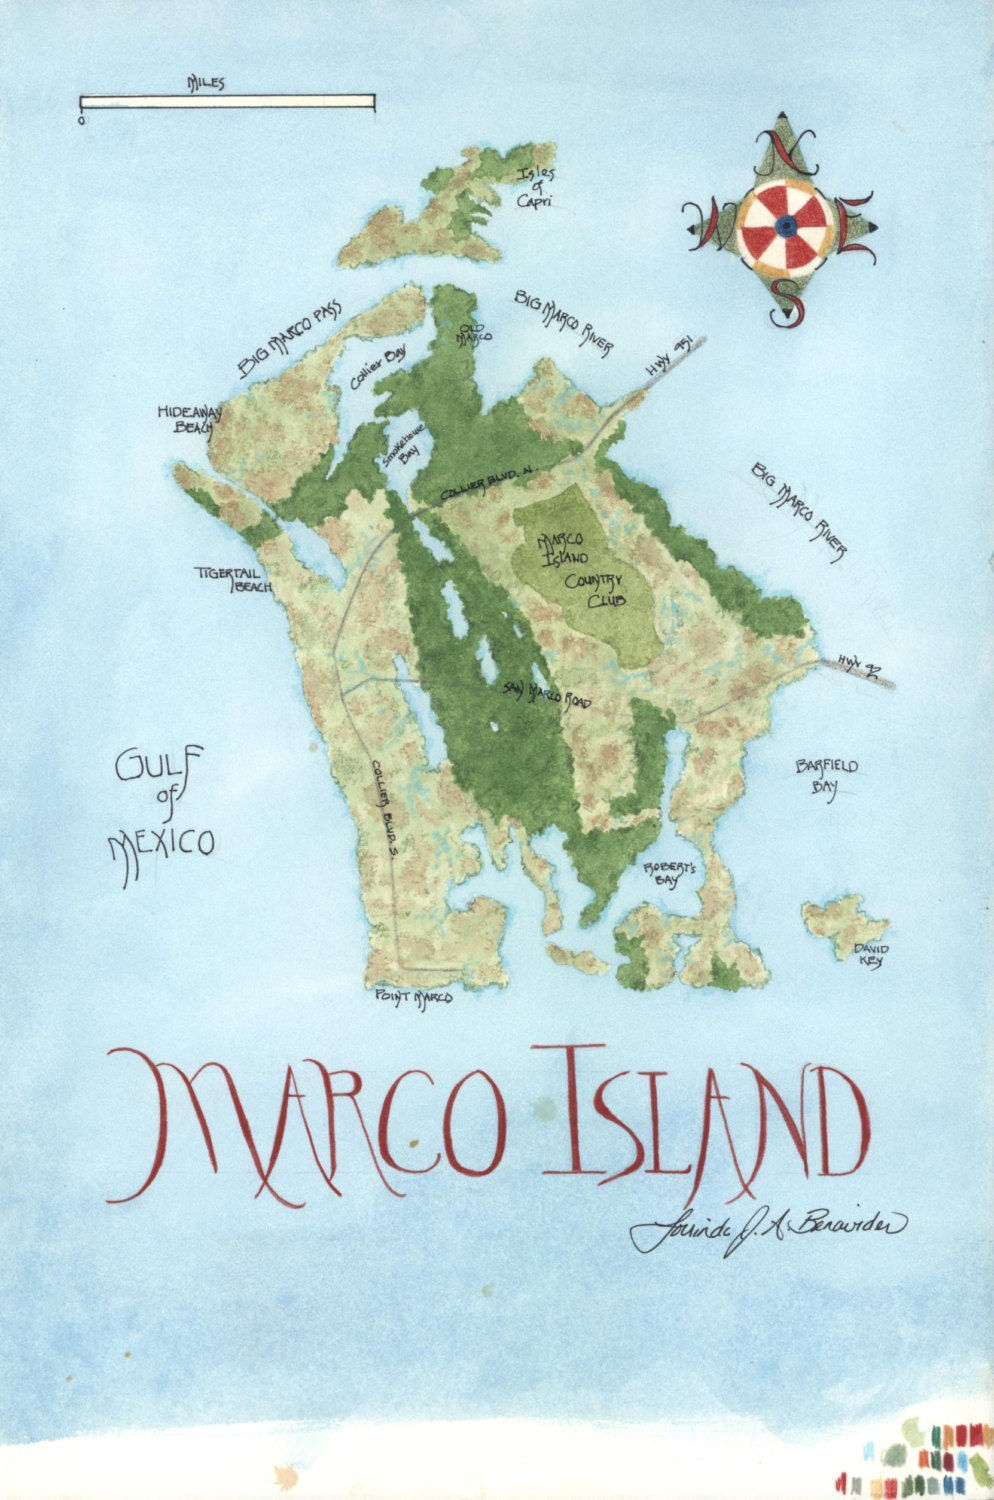 Gulf of Mexico map of Marco Island Florida watercolor